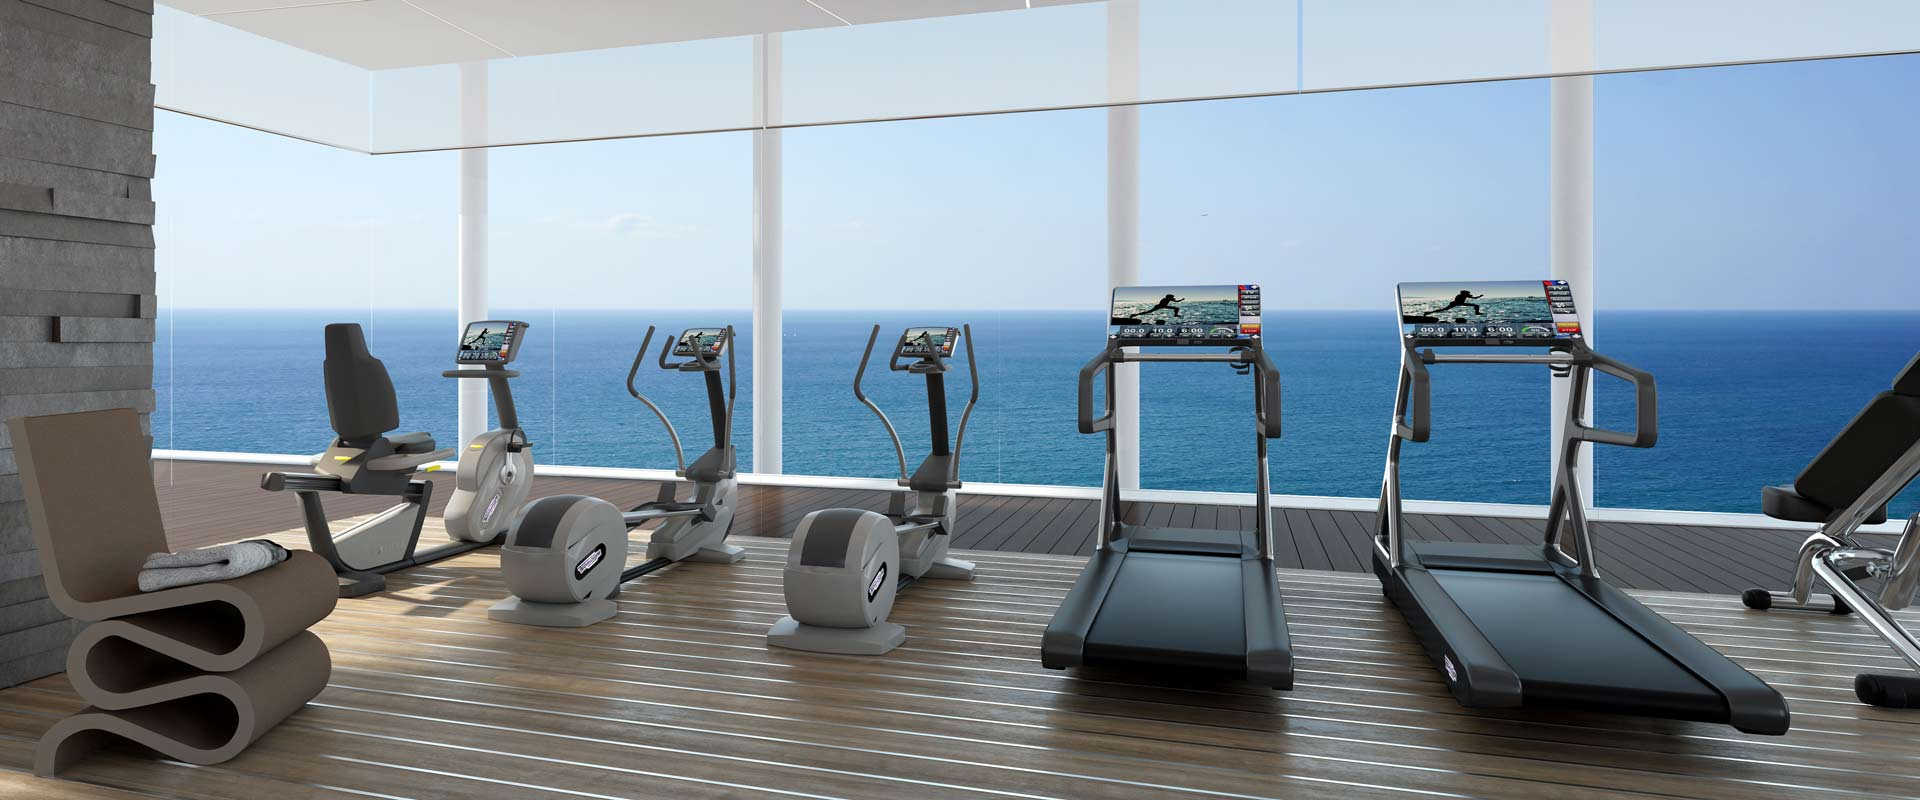 Gimnasio exclusivo del David Promenade Residences